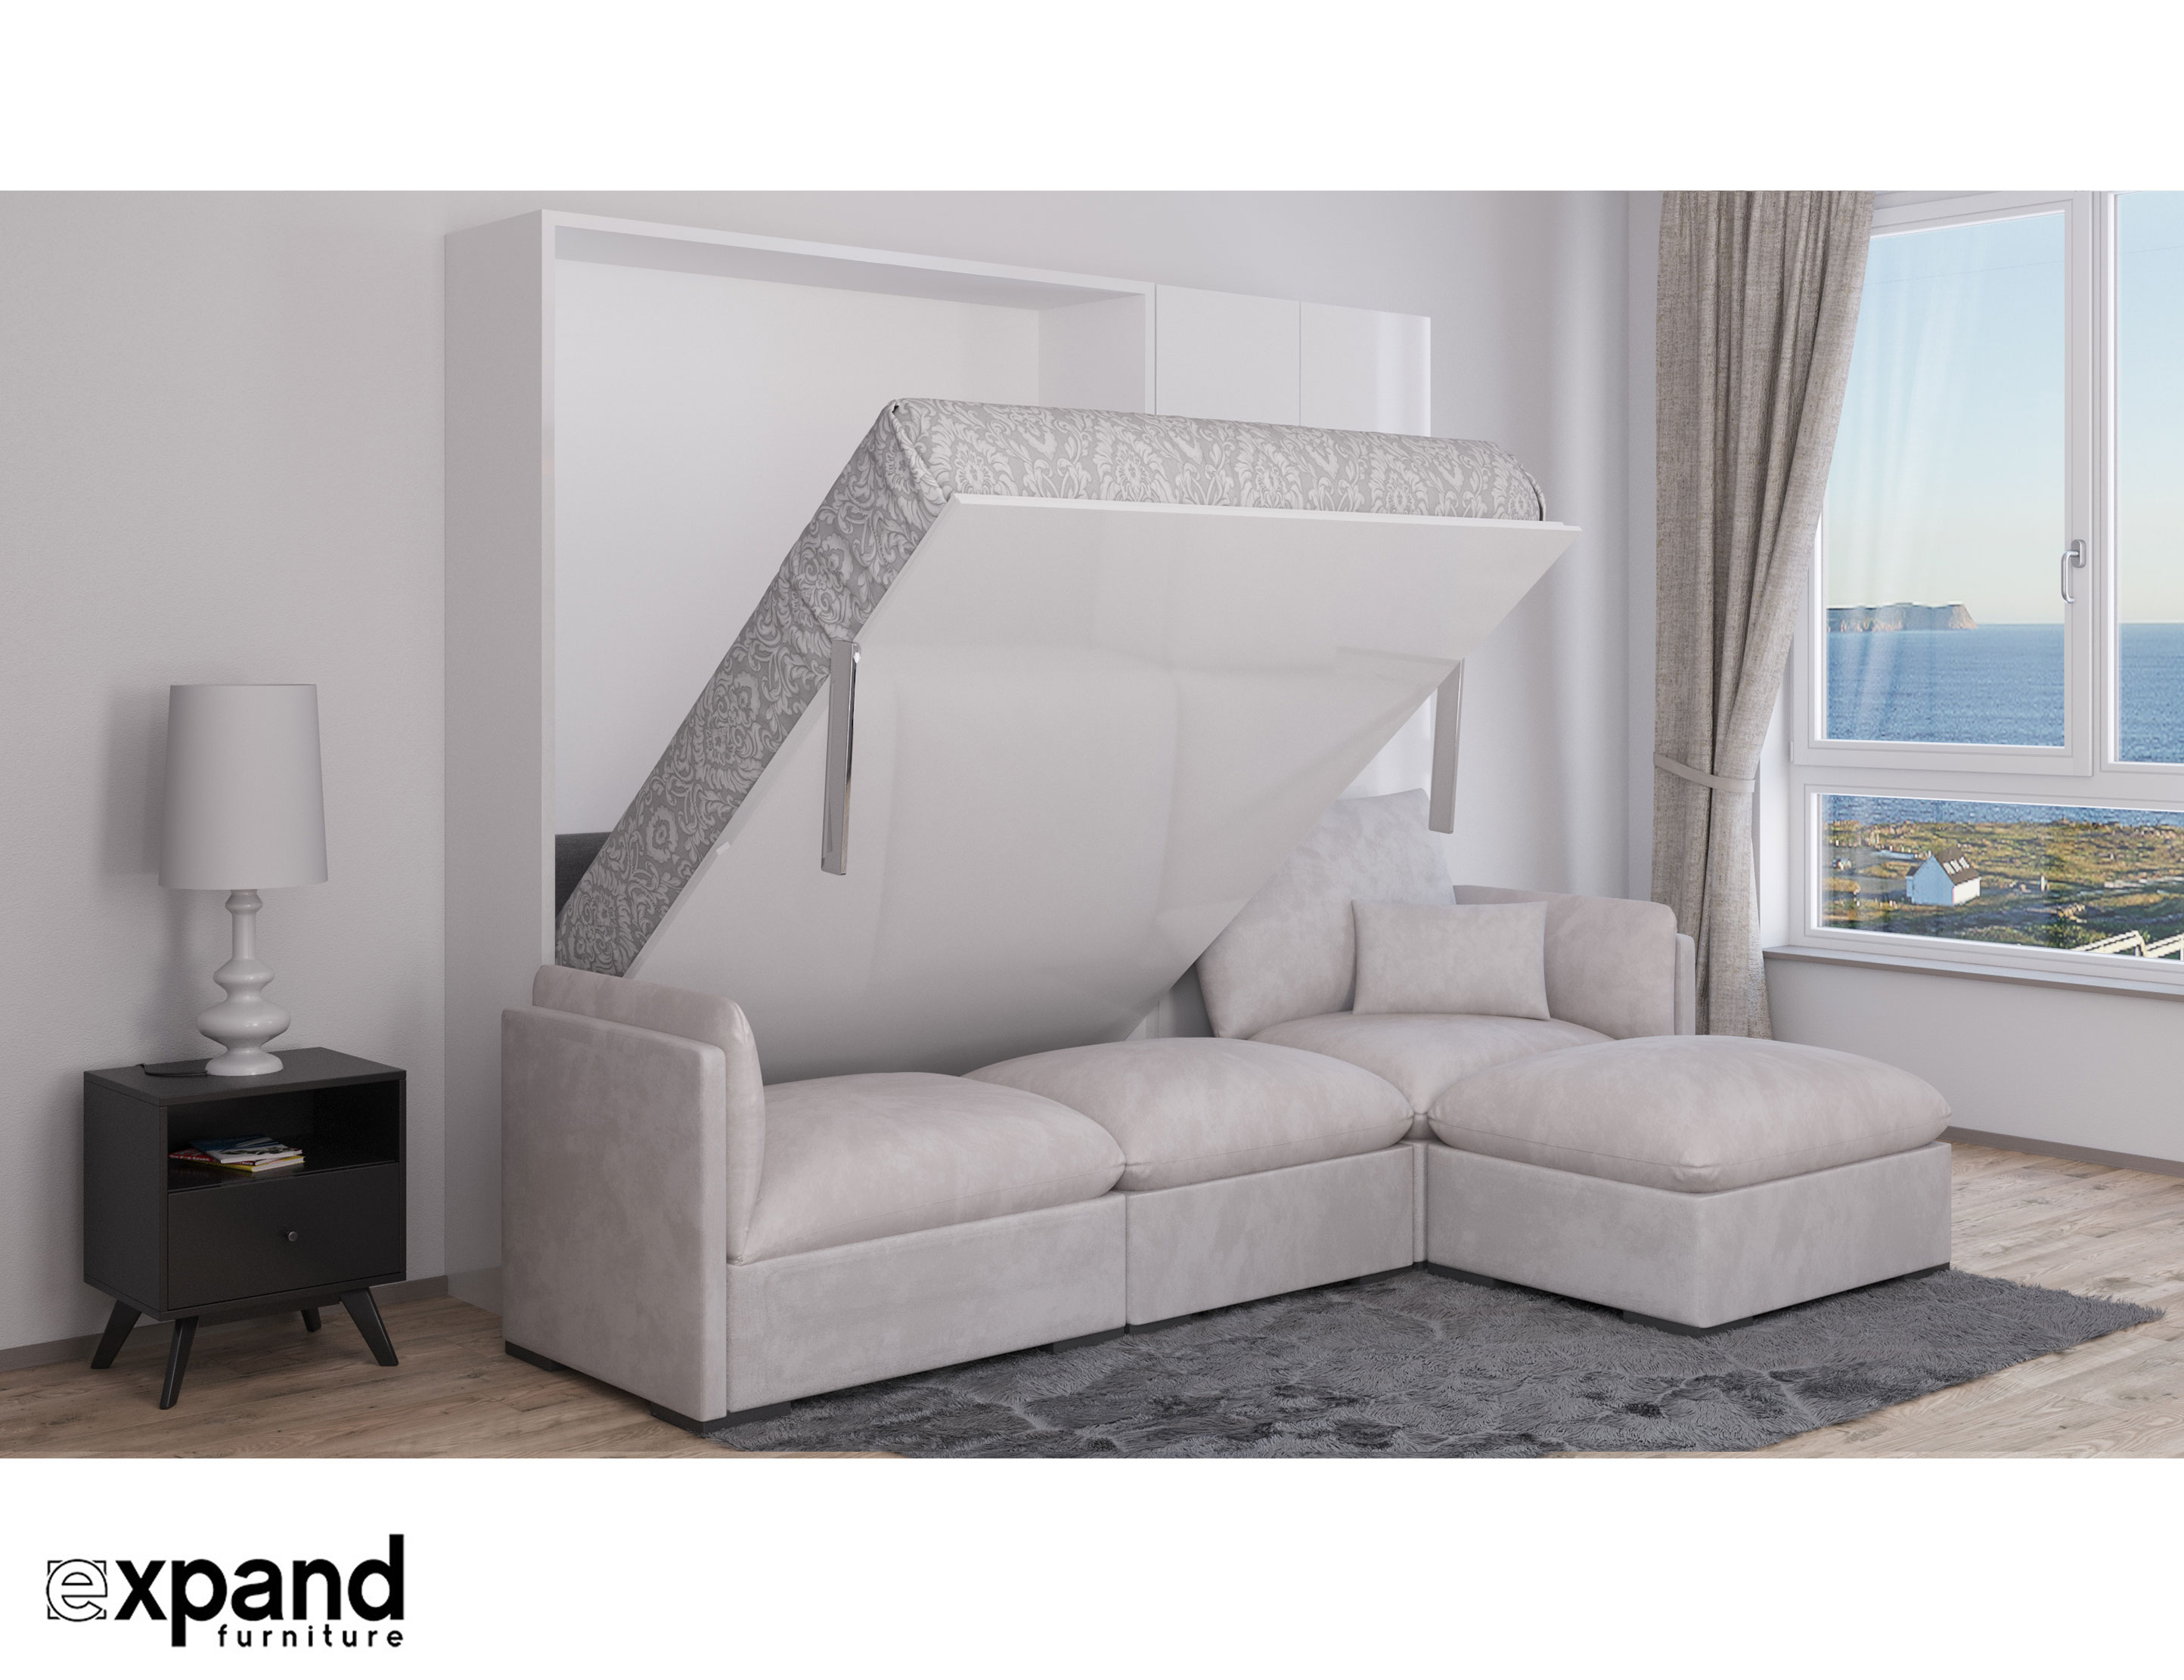 sofa murphy bed combination how to make armless slipcover murphysofa adagio queen luxury sectional wall